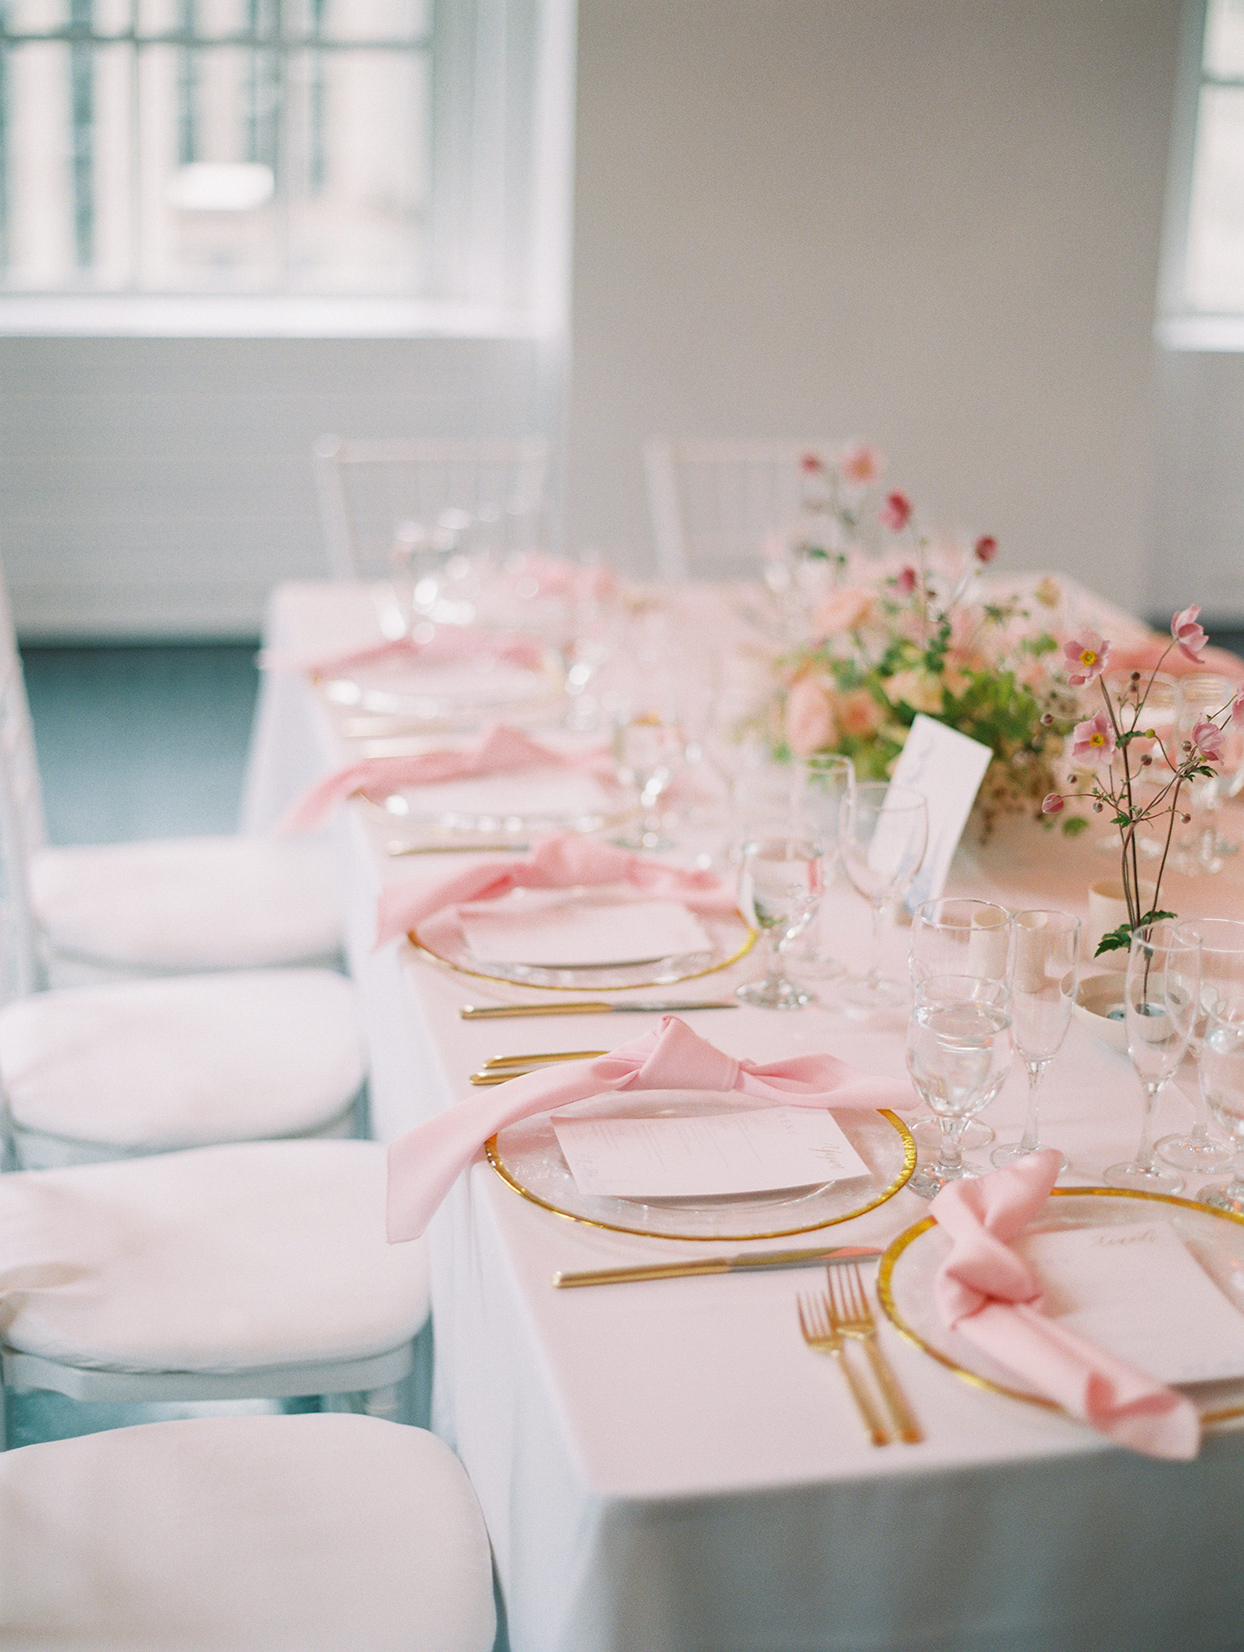 pastel pink and gold wedding place settings at long tables